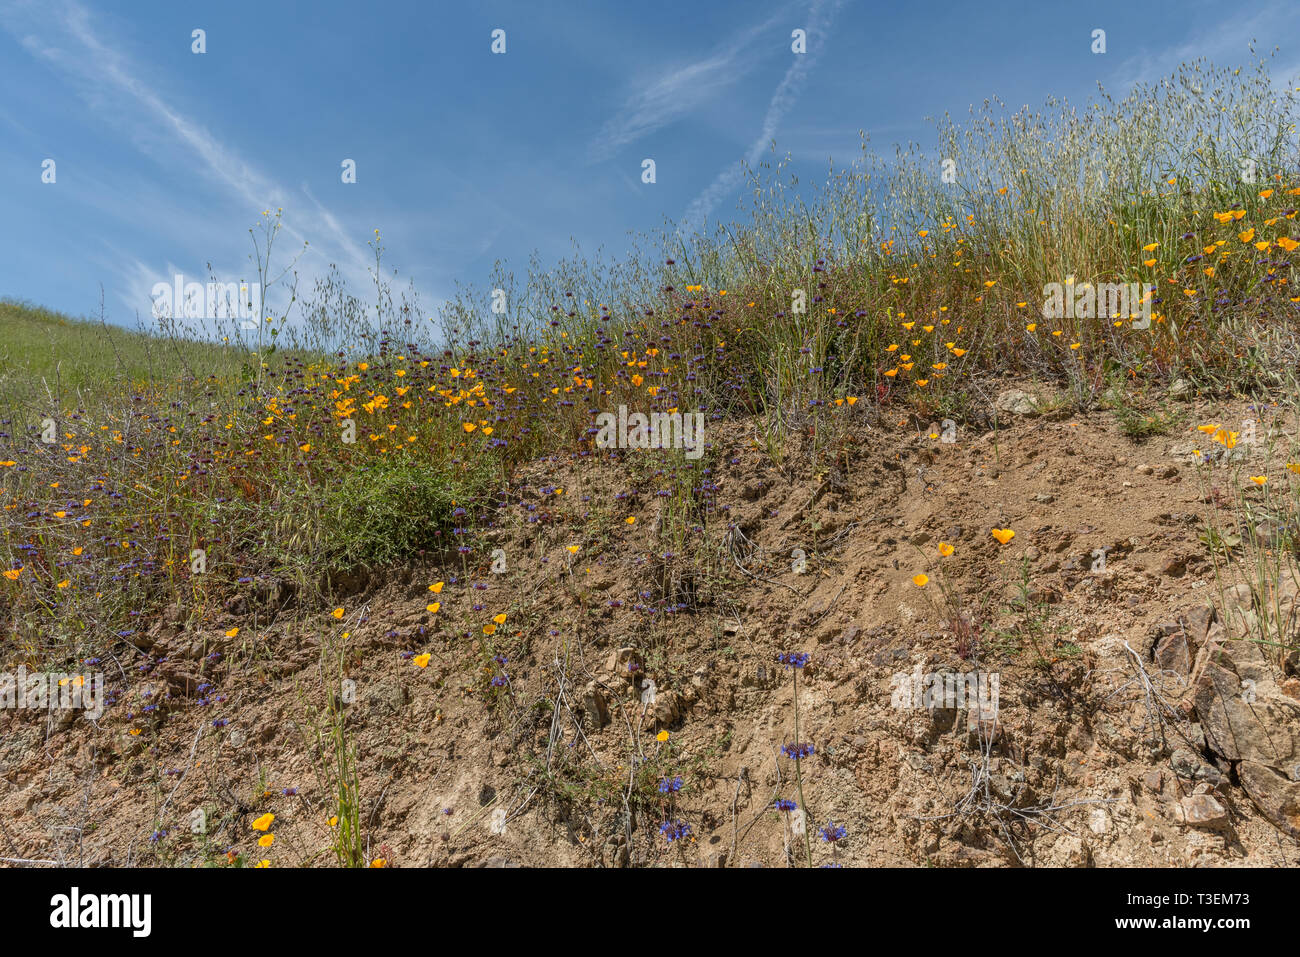 Beautiful wild flowers - a part of the superbloom event in the Walker Canyon mountain range near Lake Elsinore, Southern California - Stock Image